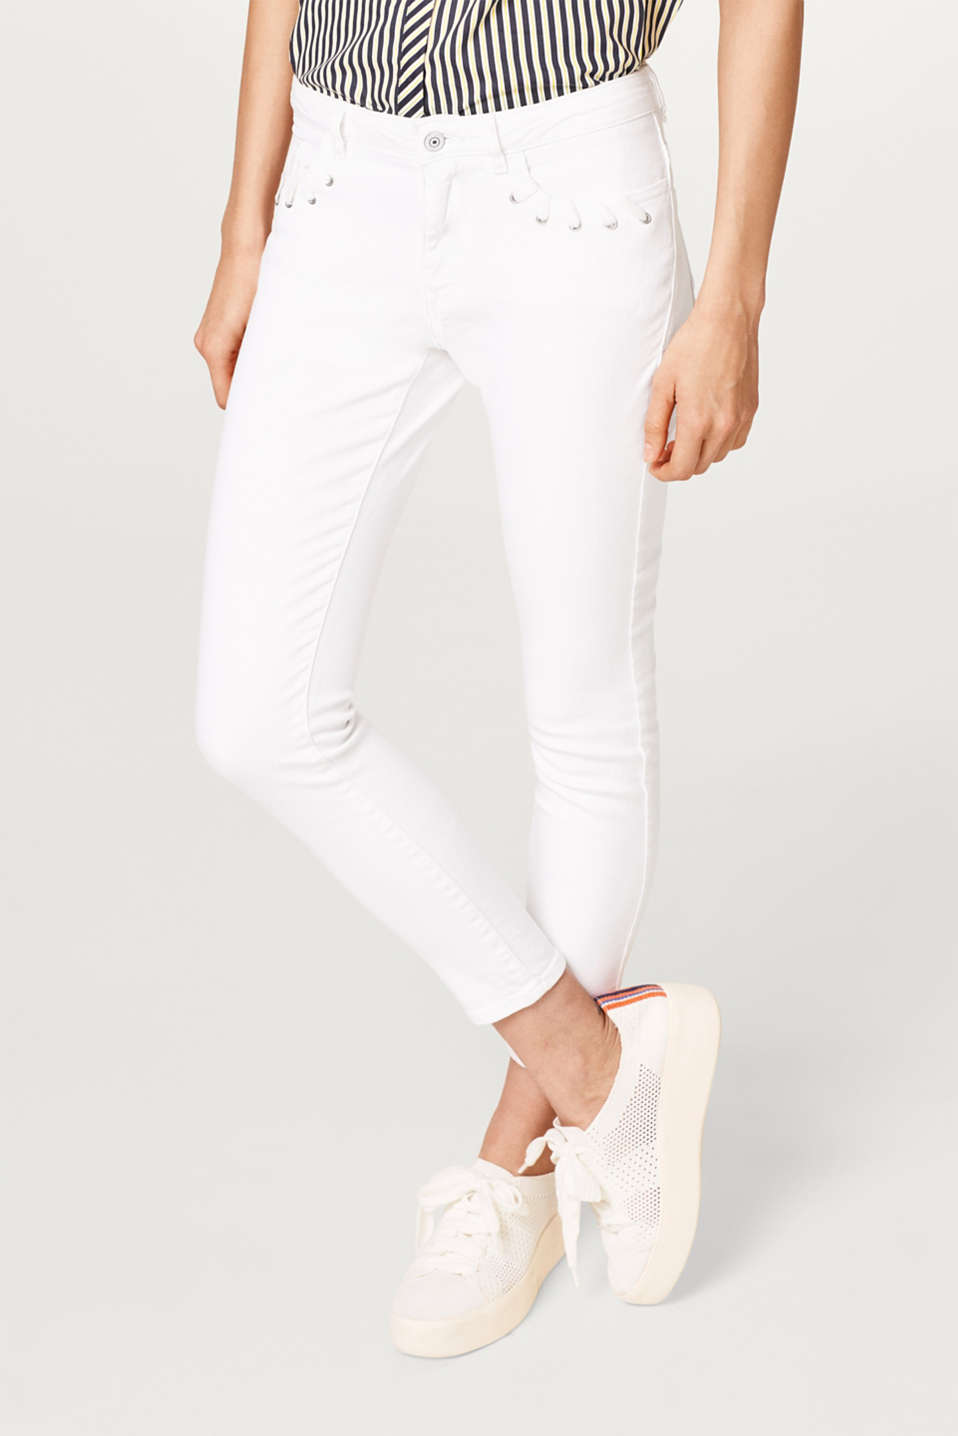 edc - Stretch cotton ankle-length trousers